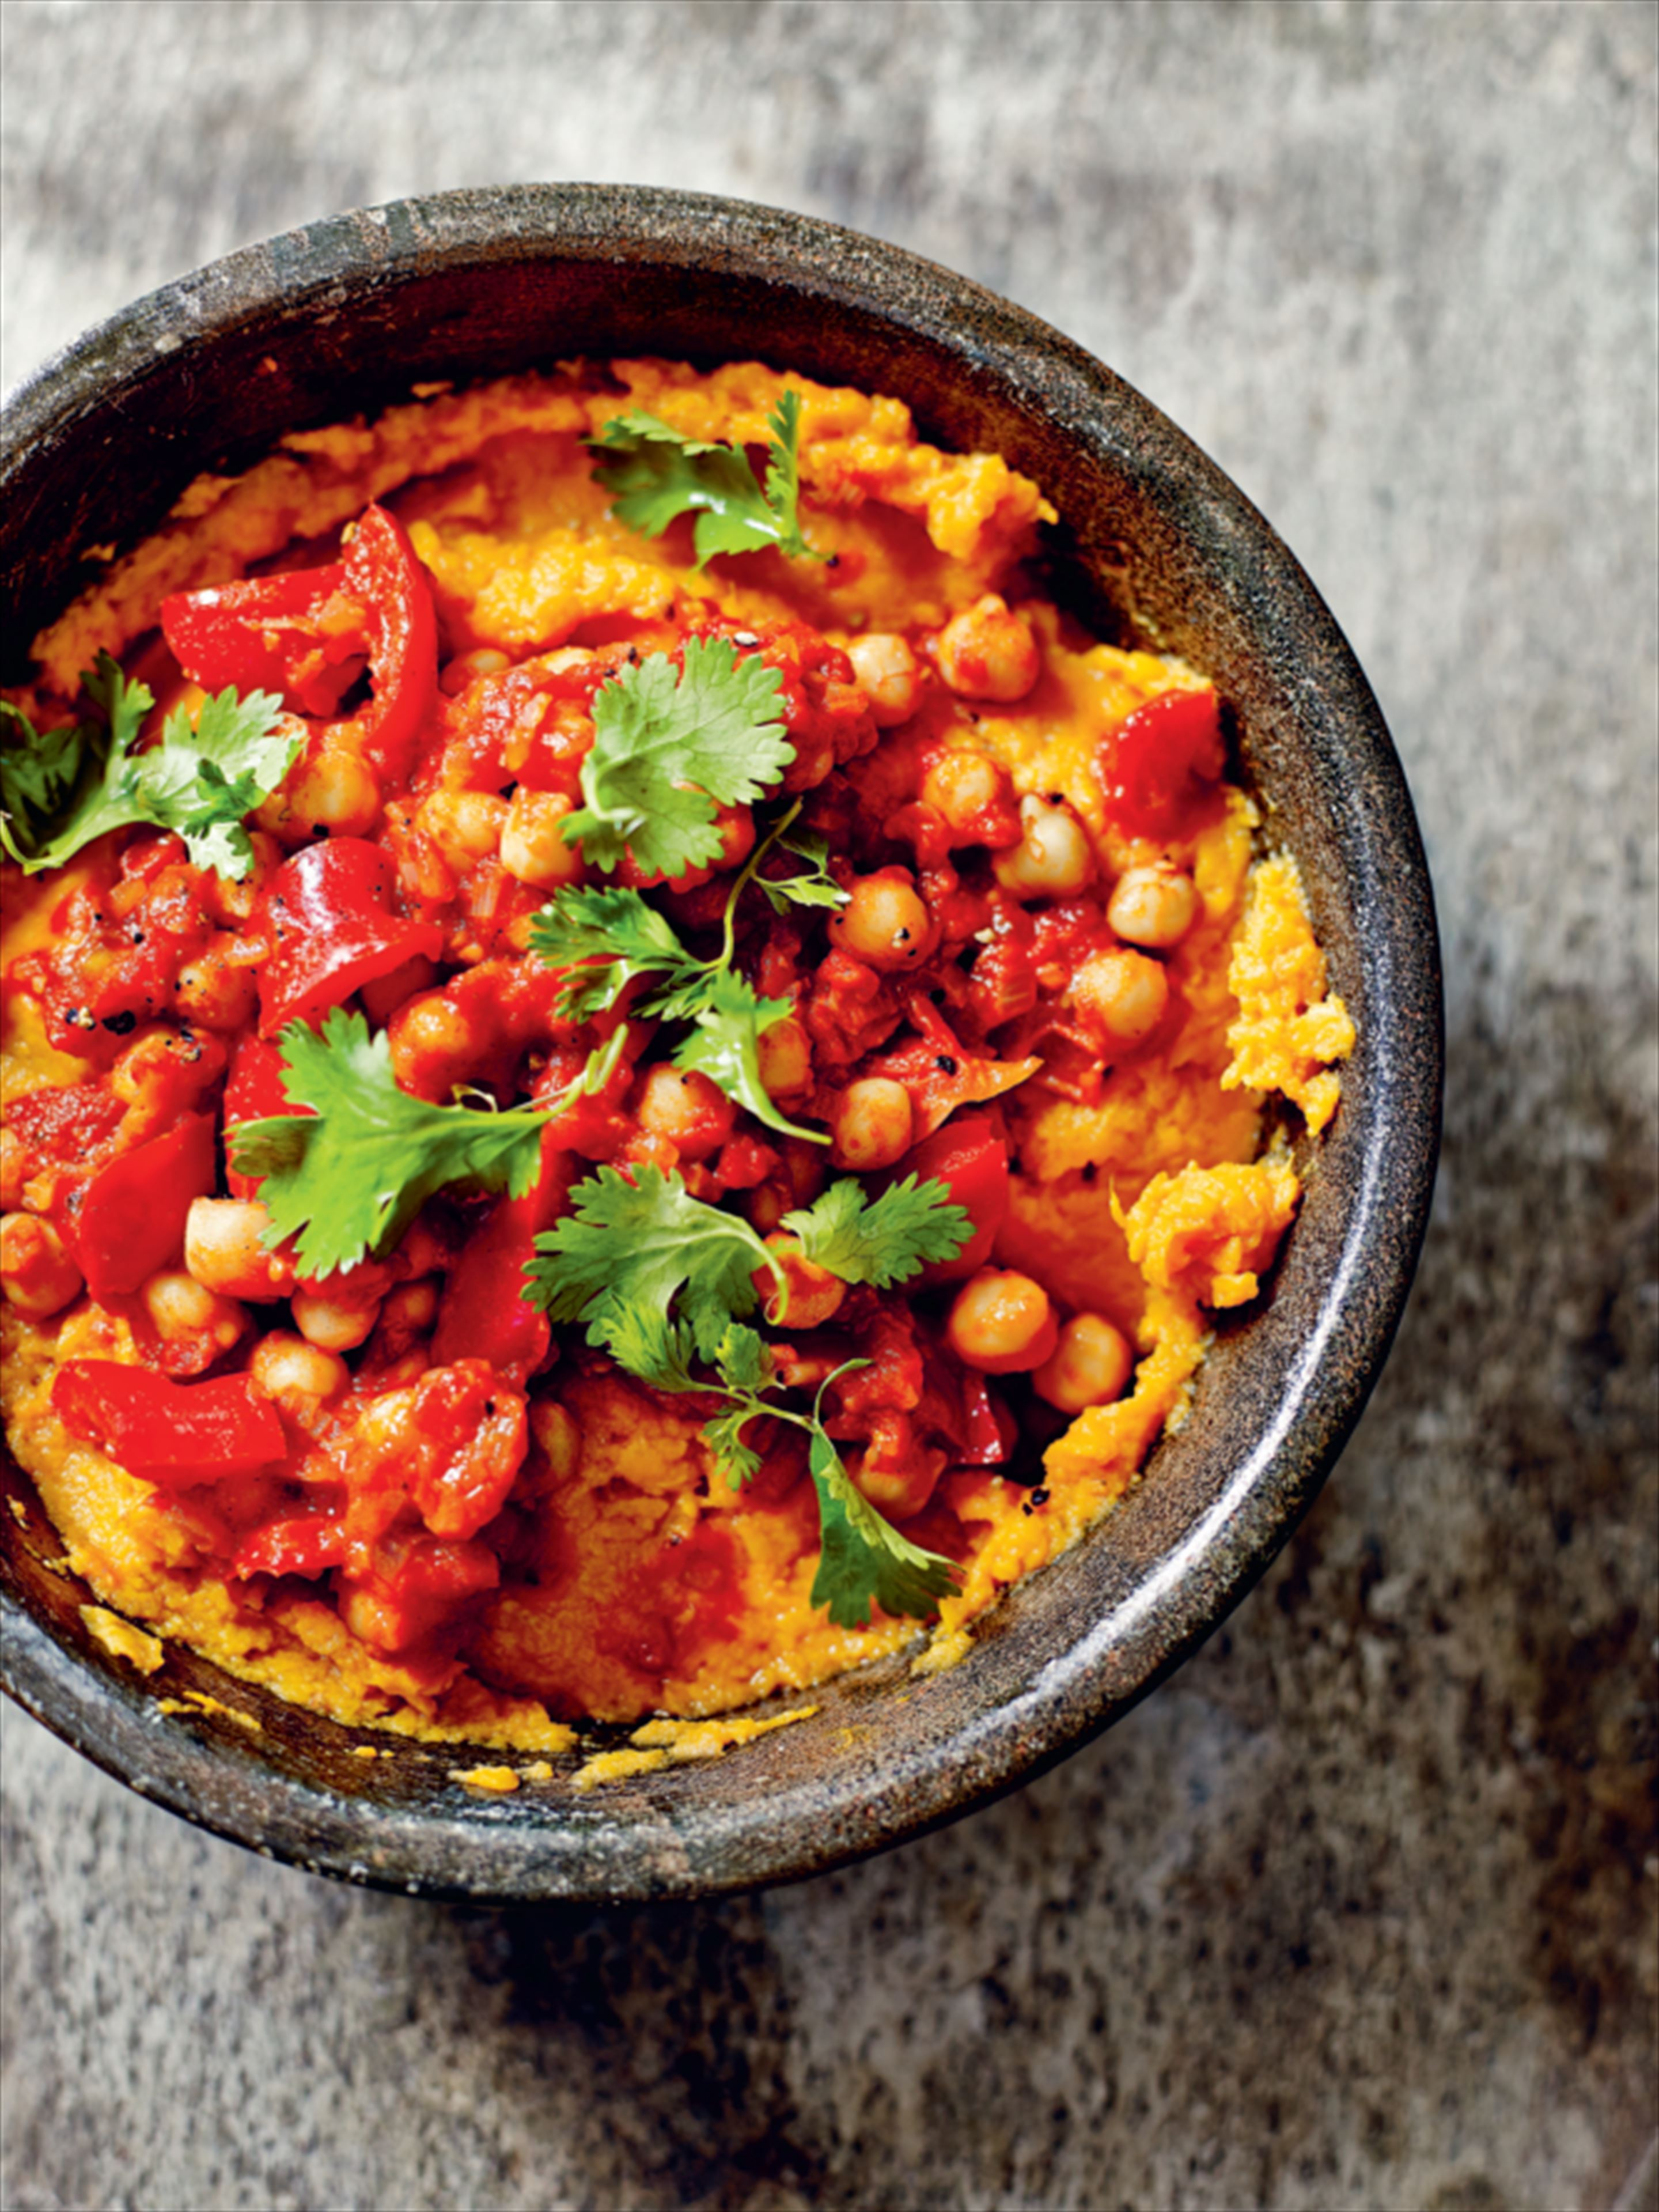 Chickpea and red pepper stew with sweet potato mash